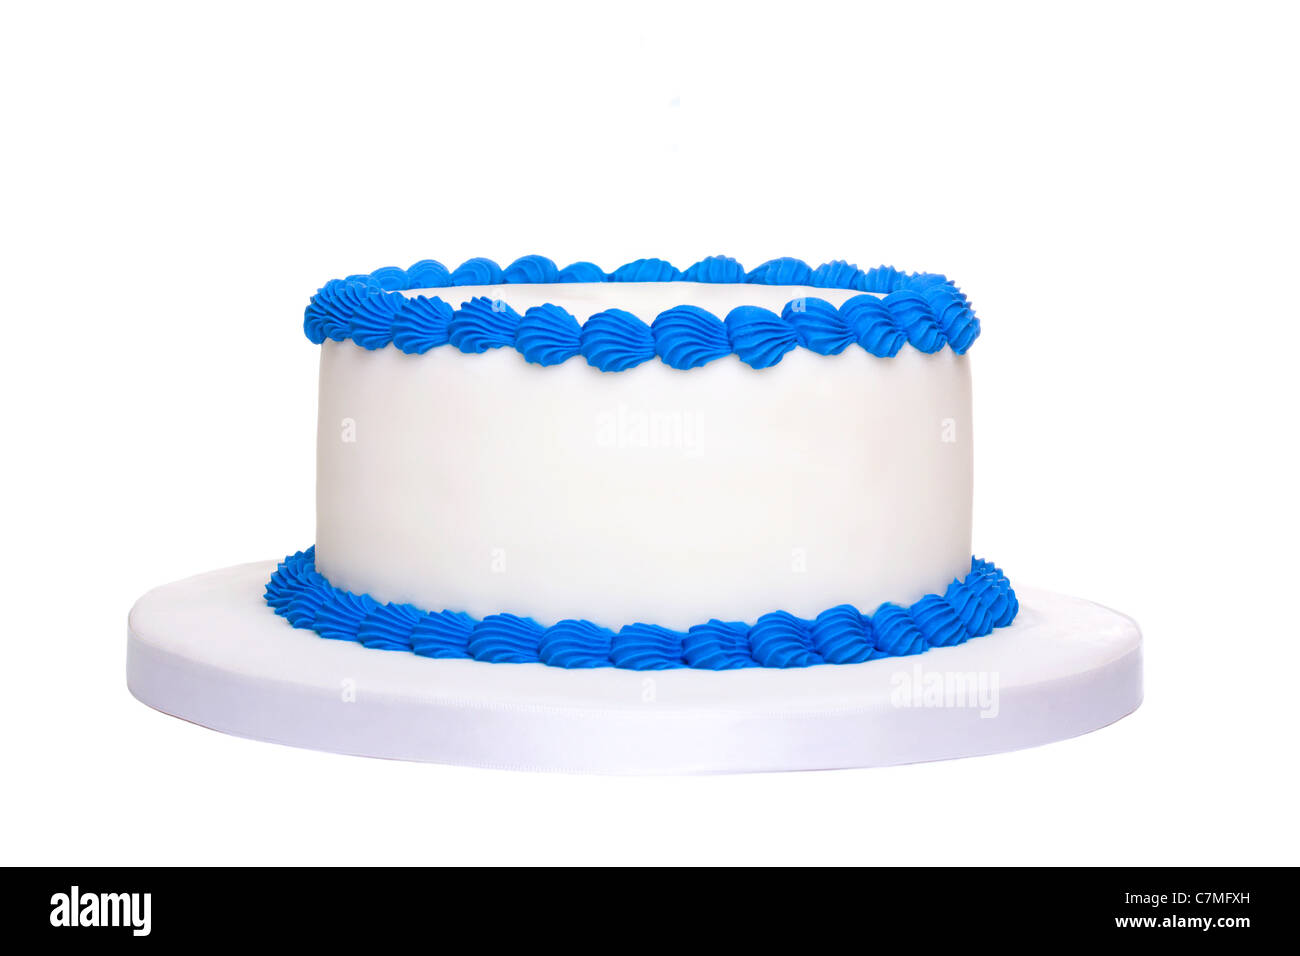 Blank birthday cake Stock Photo: 39174873 - Alamy